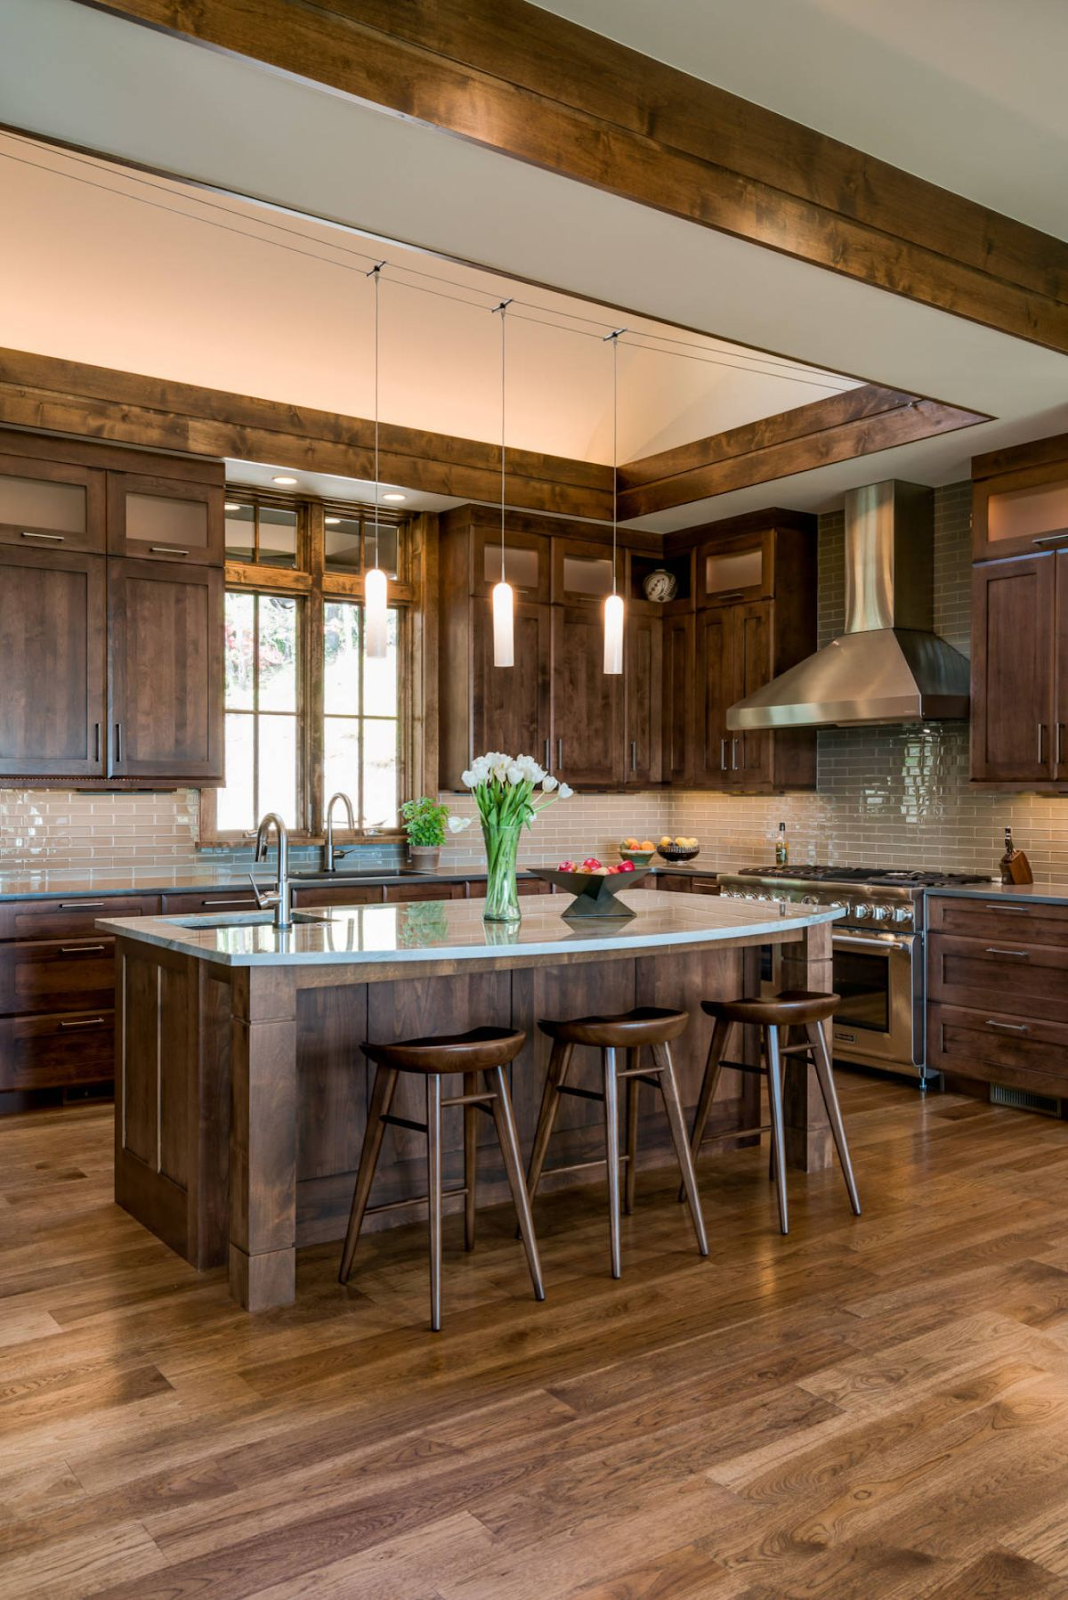 rustic wood kitchen with wood shaker cabinets, wood flooring, wood ceiling beams and a variety of other modern wood finishes